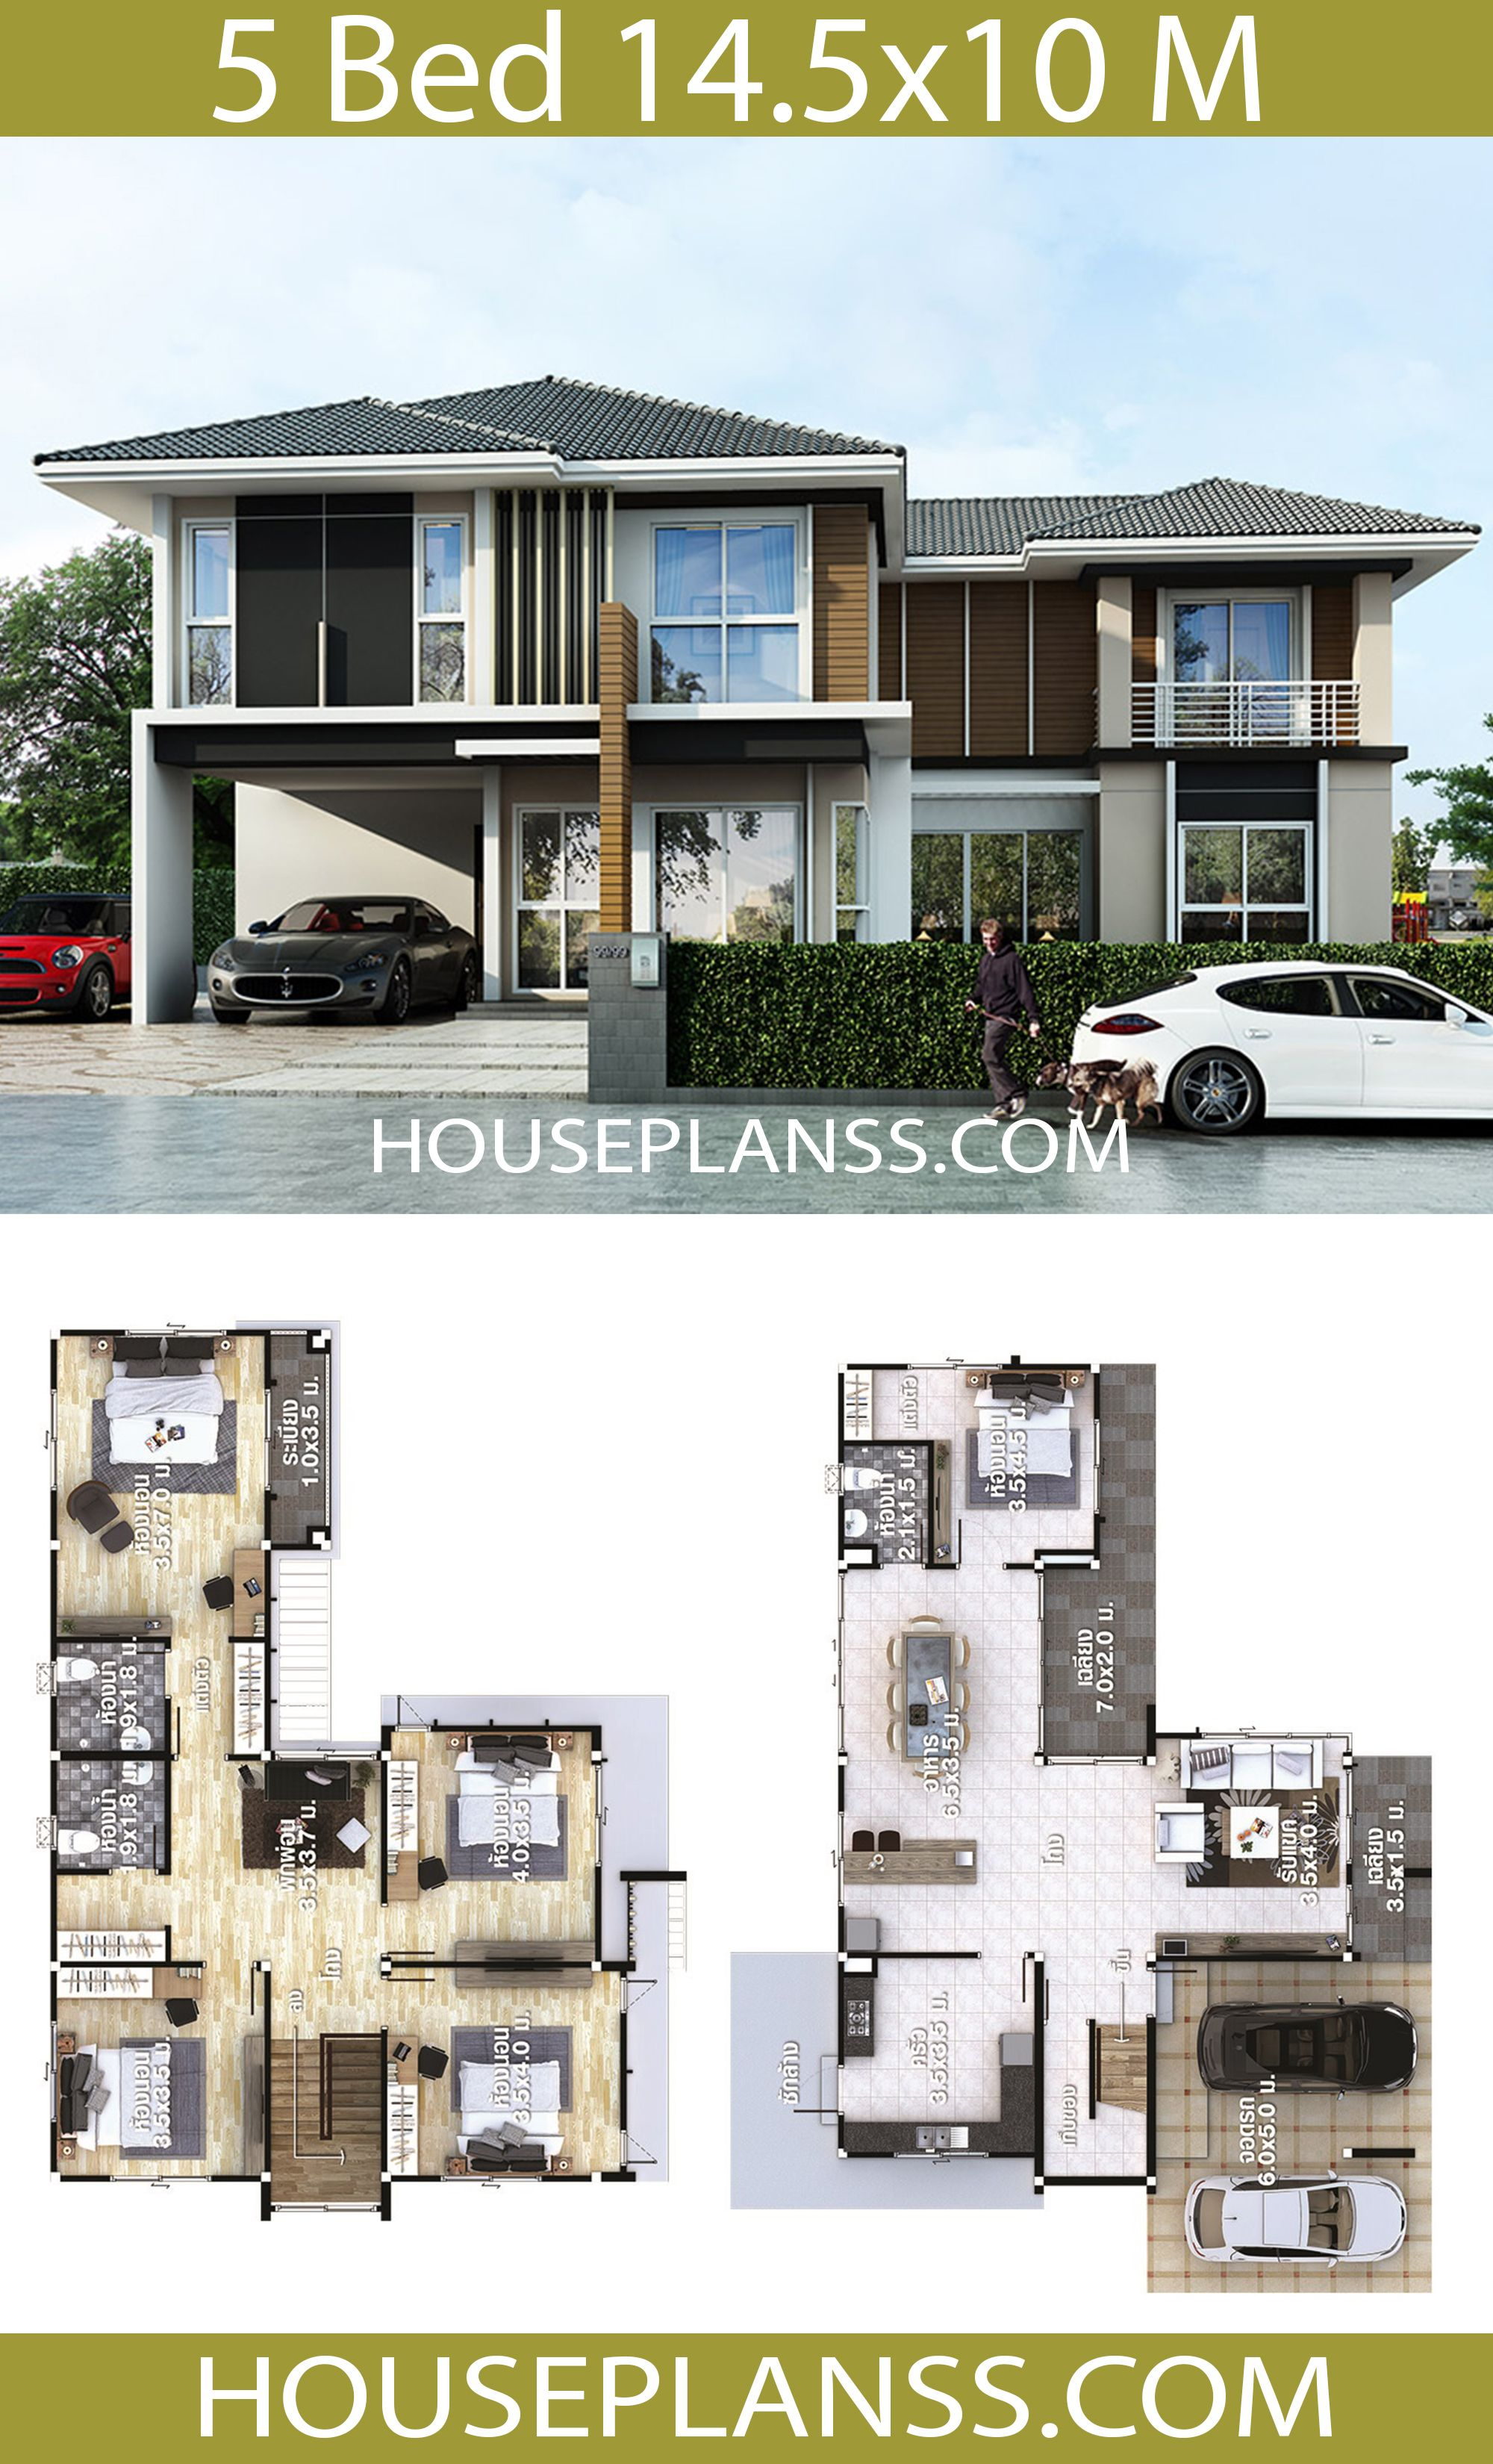 House Plans Idea 14 5x10 With 5 Bedrooms House Plans 3d In 2020 House Outside Design House Plan Gallery Bungalow House Design